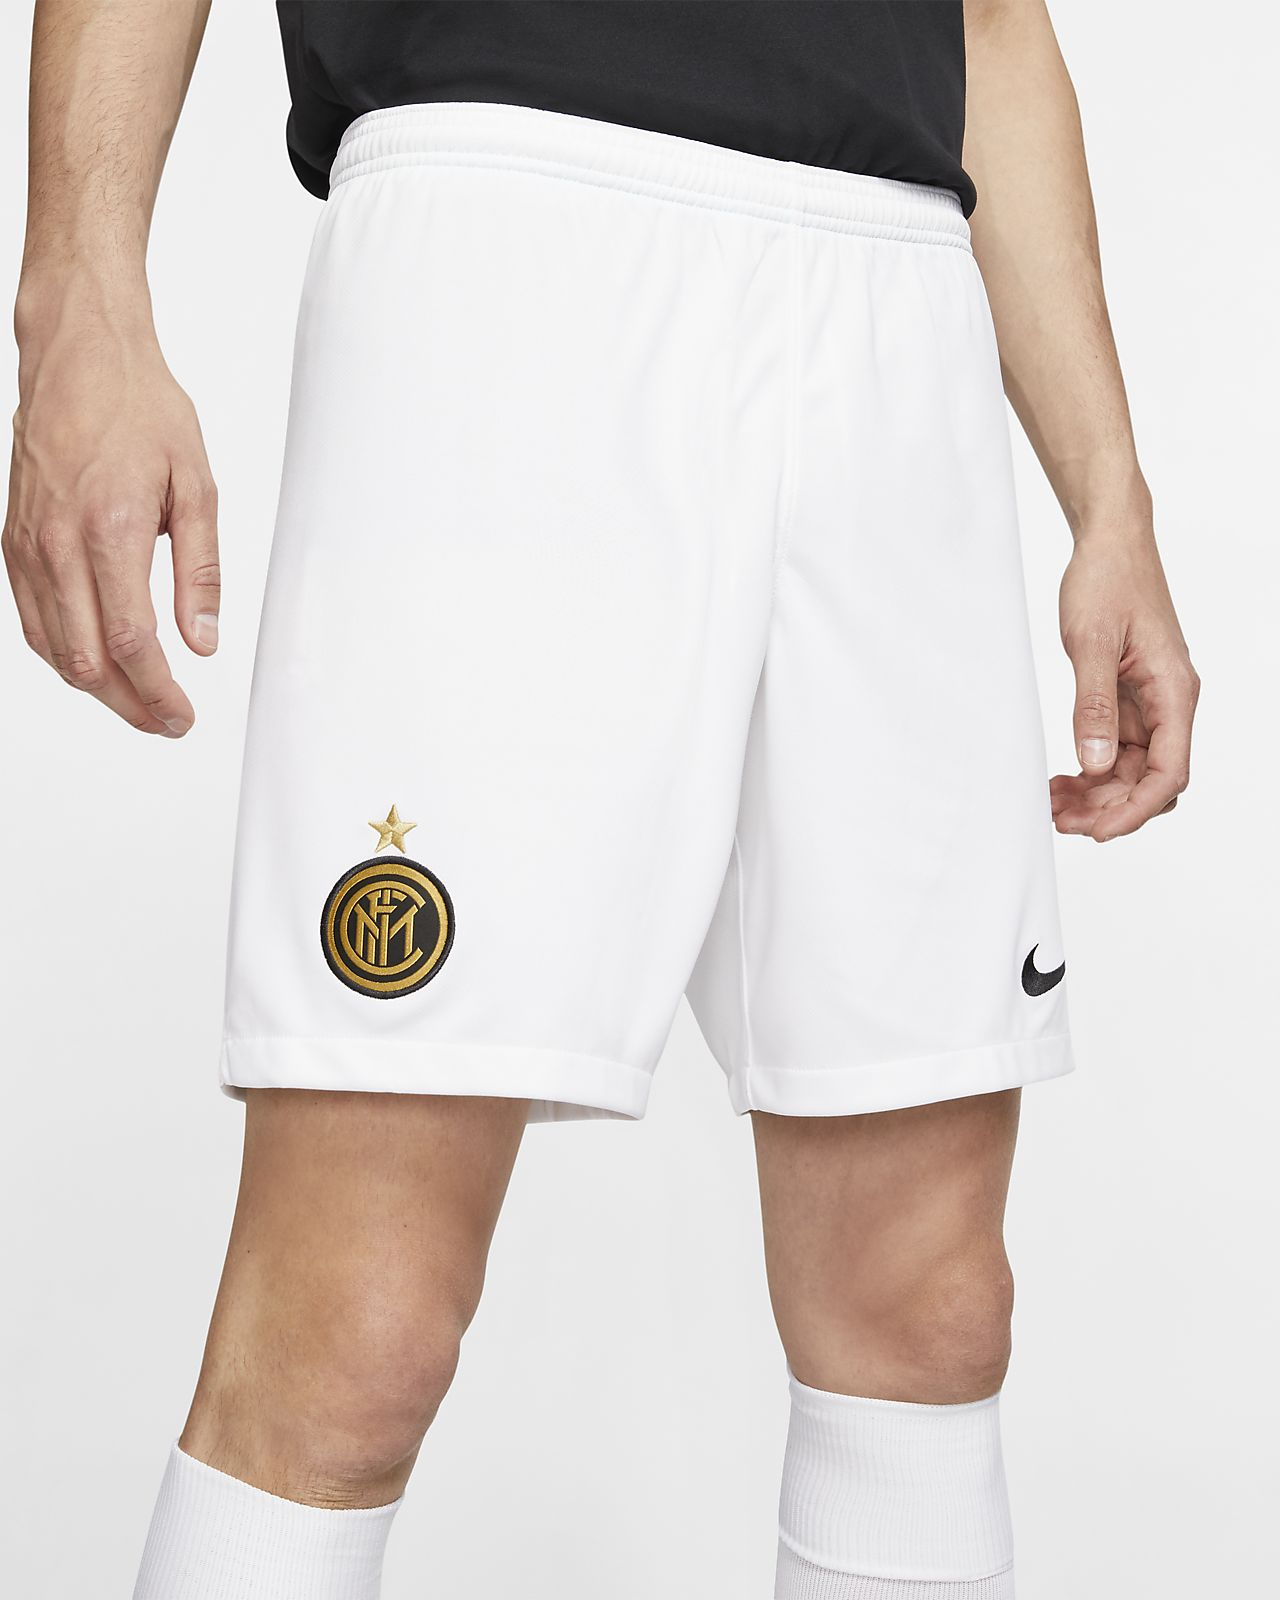 Inter Milan 2019/20 Stadium Home/Away Men's Football Shorts